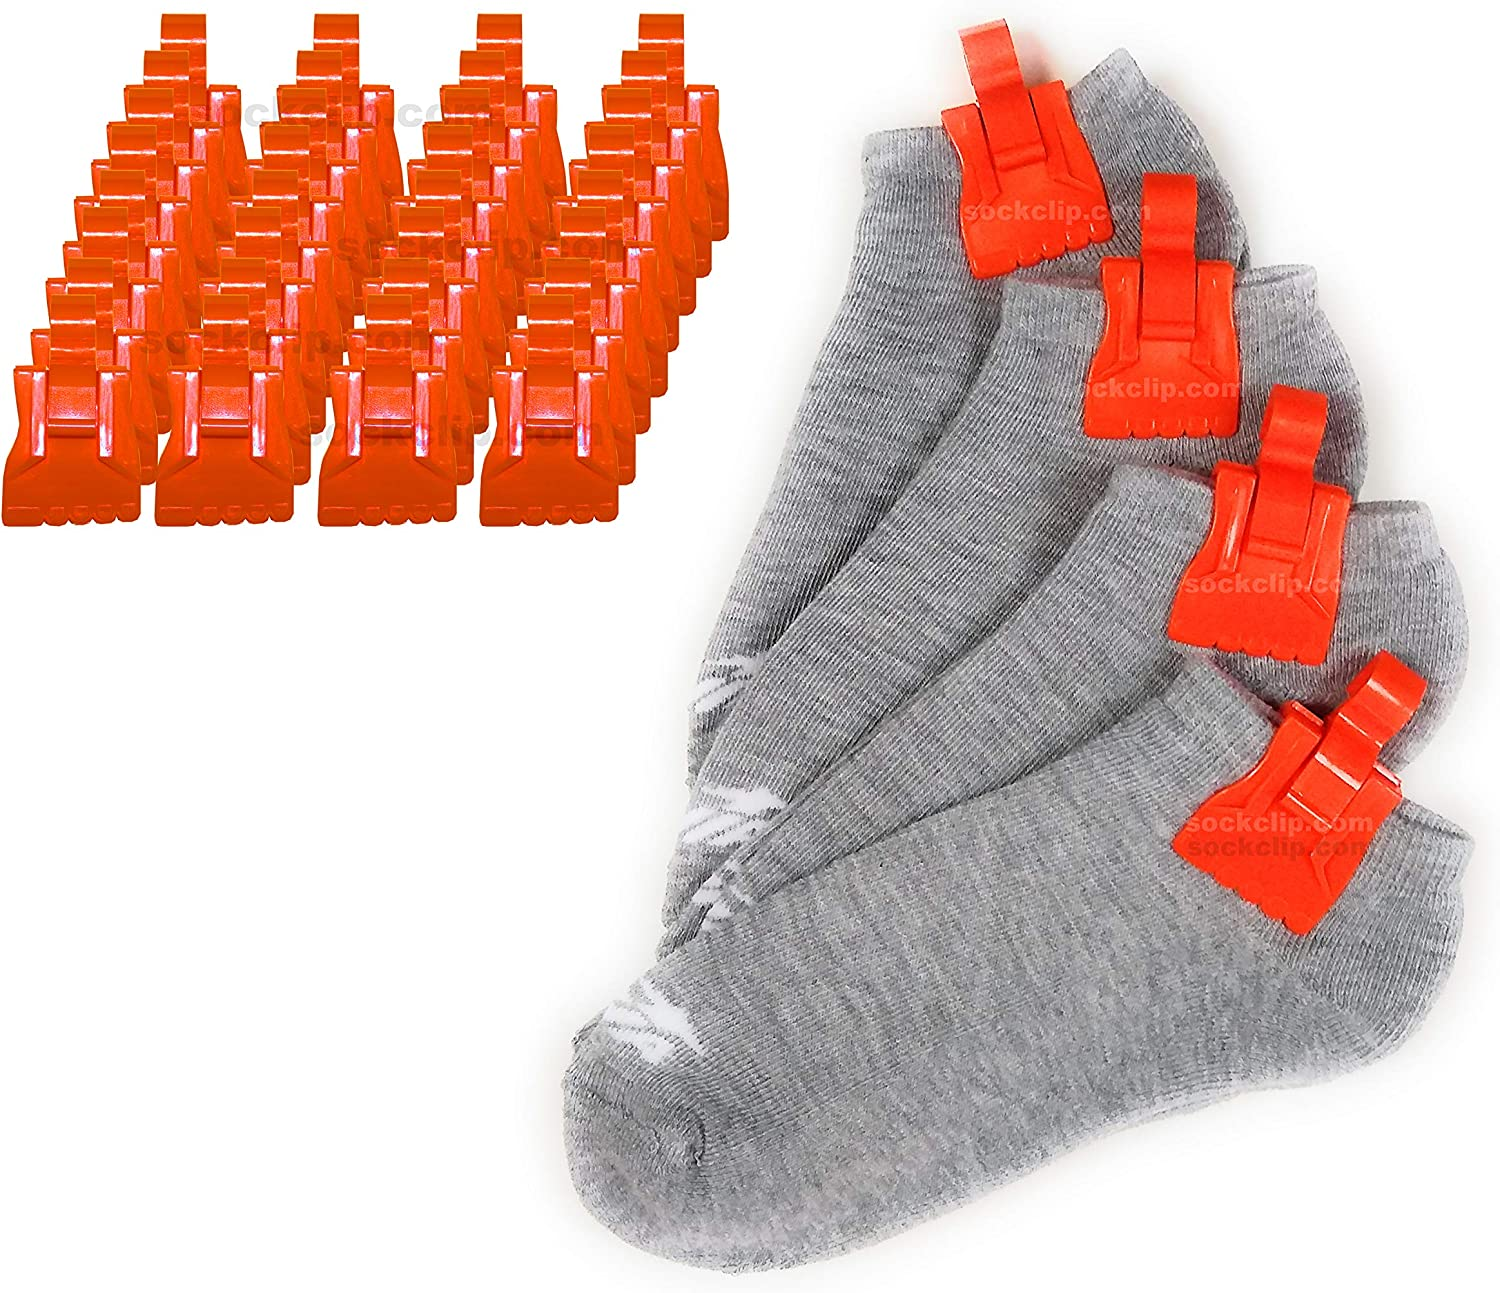 The Amazing Sock Clip Holder 32 Orange Made 70% OFF Outlet U.S Clips in Max 66% OFF